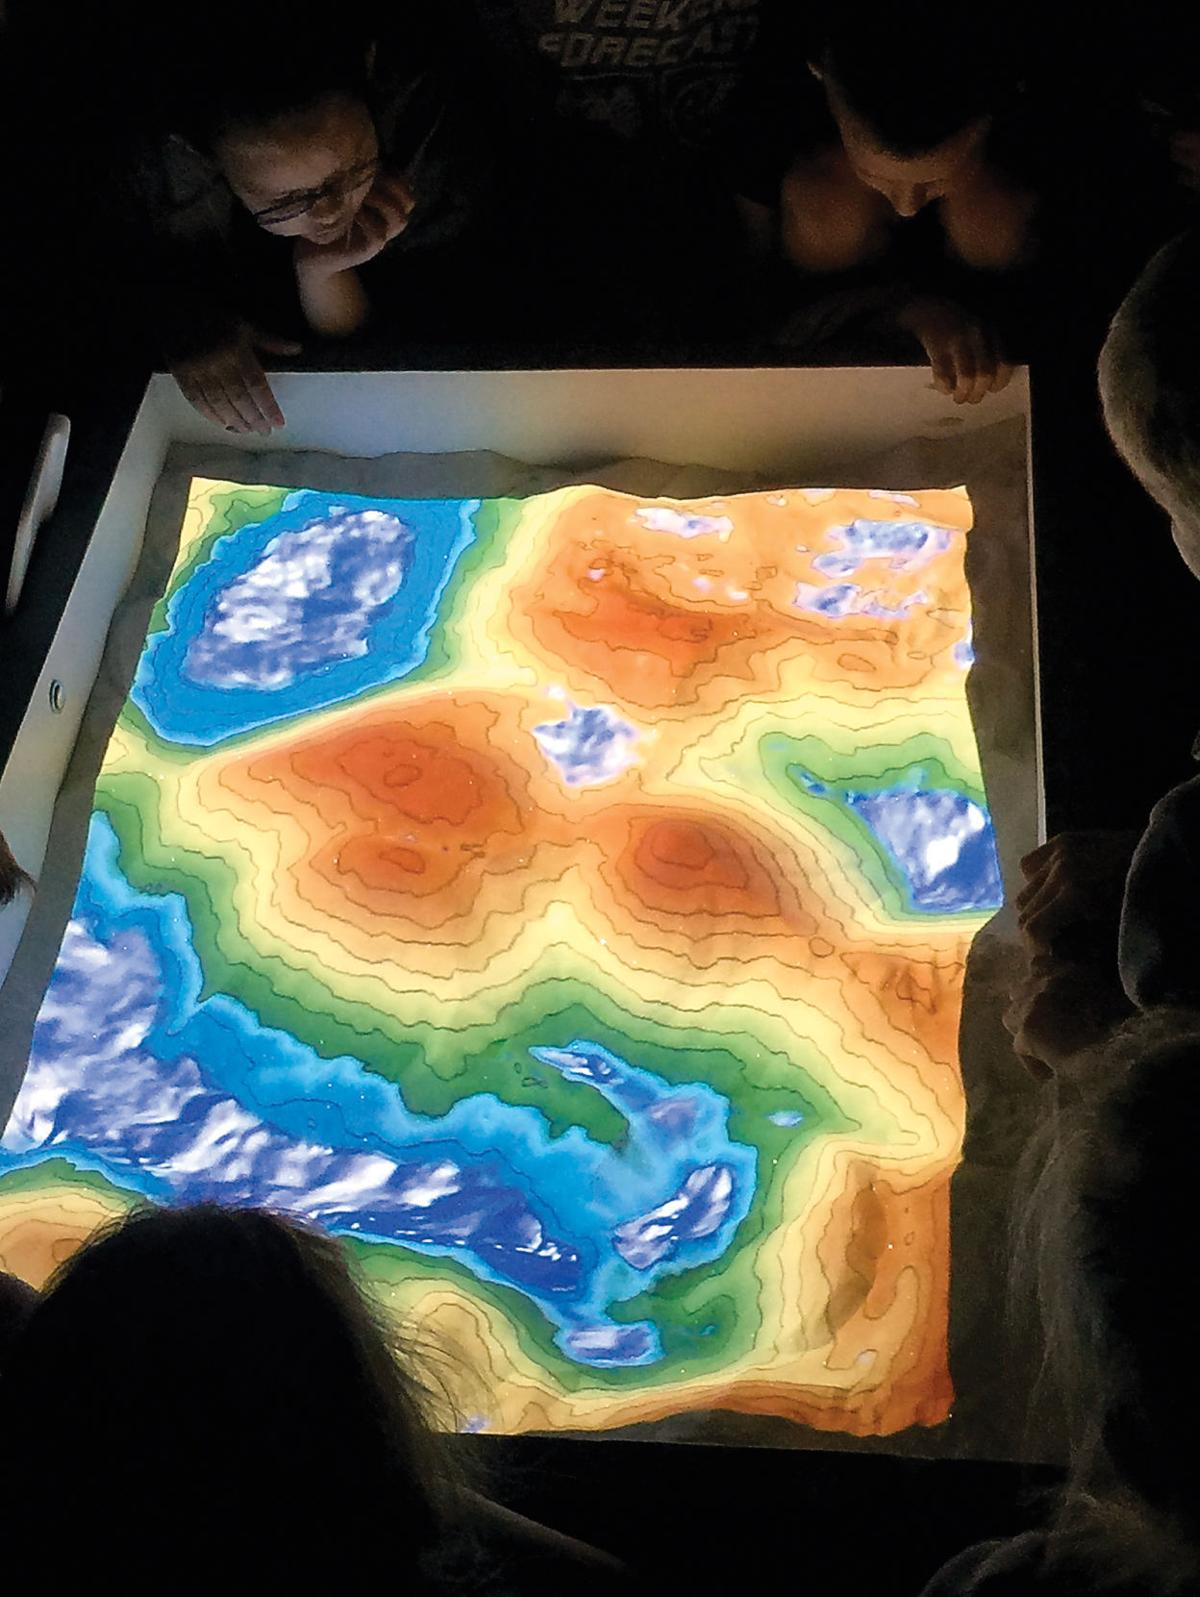 Augmented reality sandbox shows contour map in 3D at Walland Elementary